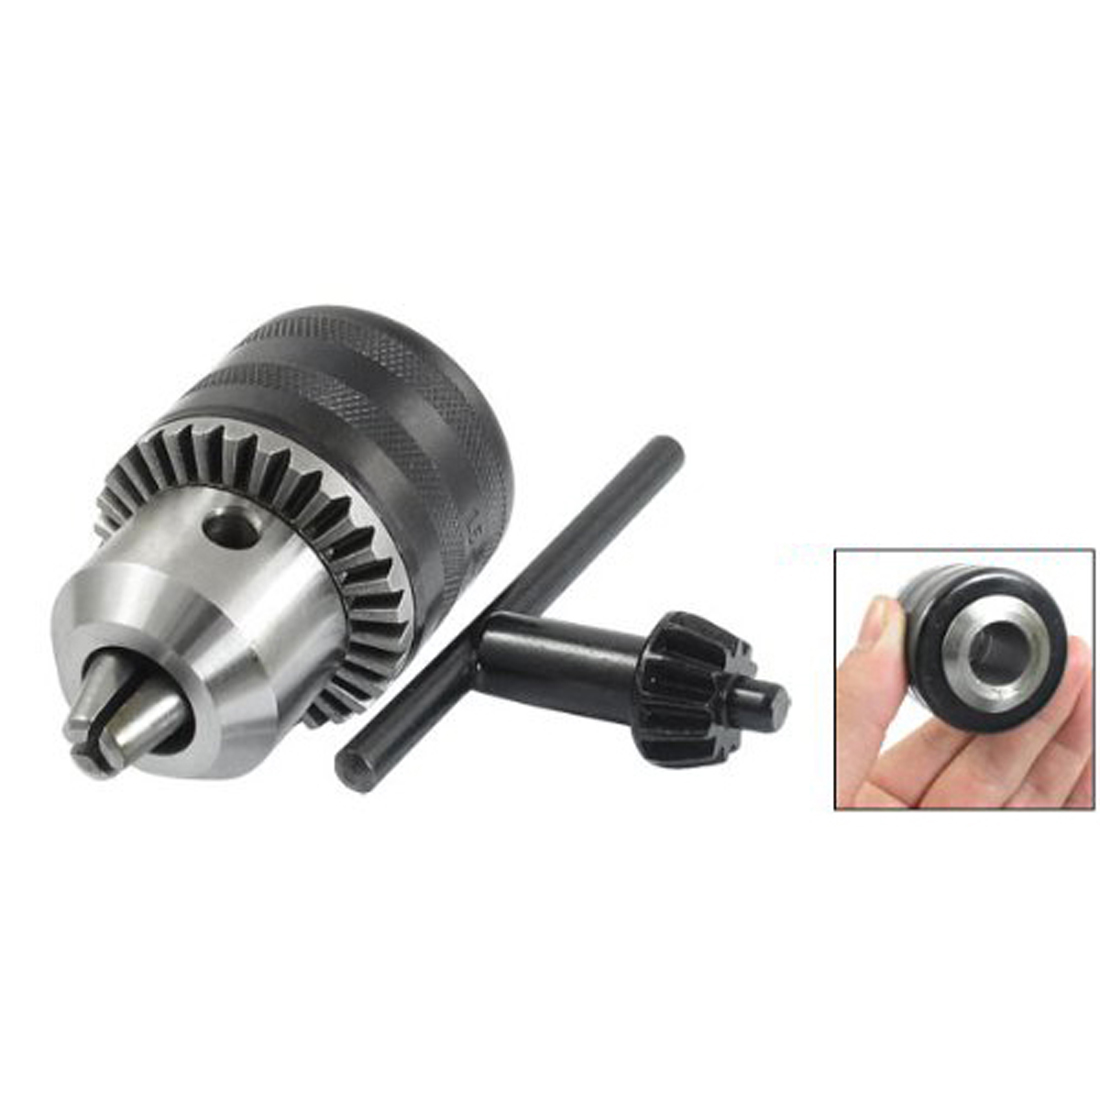 цена на WSFS Hot Sale Key Type 1.5-13mm Capacity B16 Tapered Bore Drill Chuck